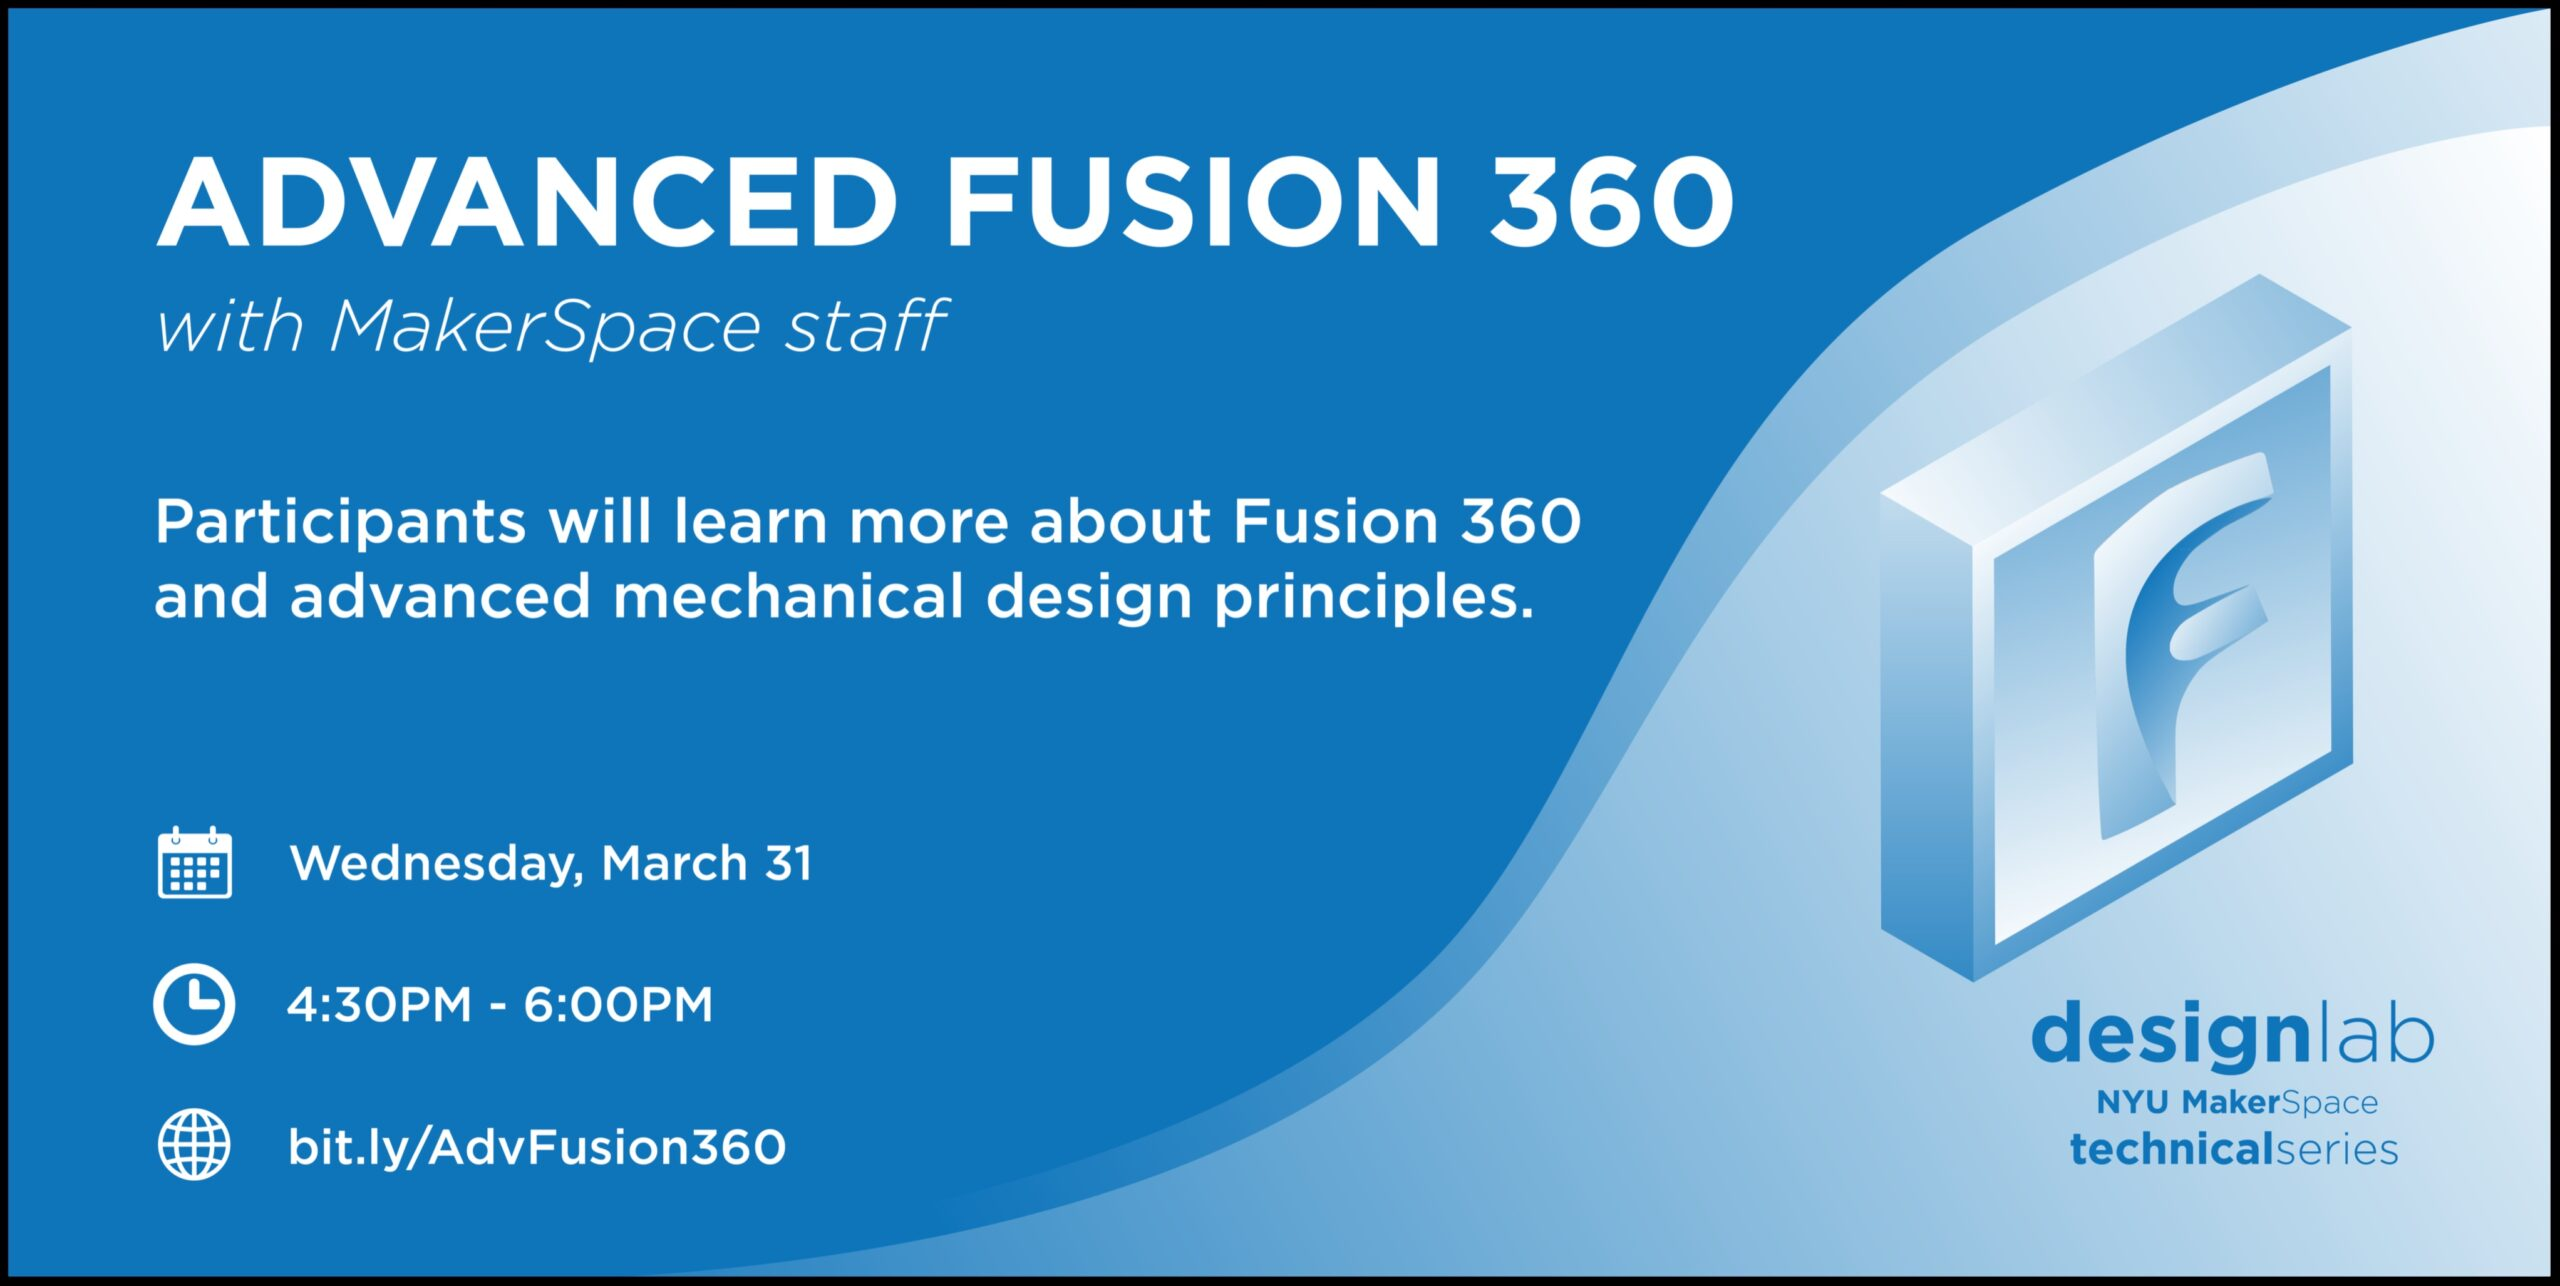 Advanced Fusion 360 Flyer